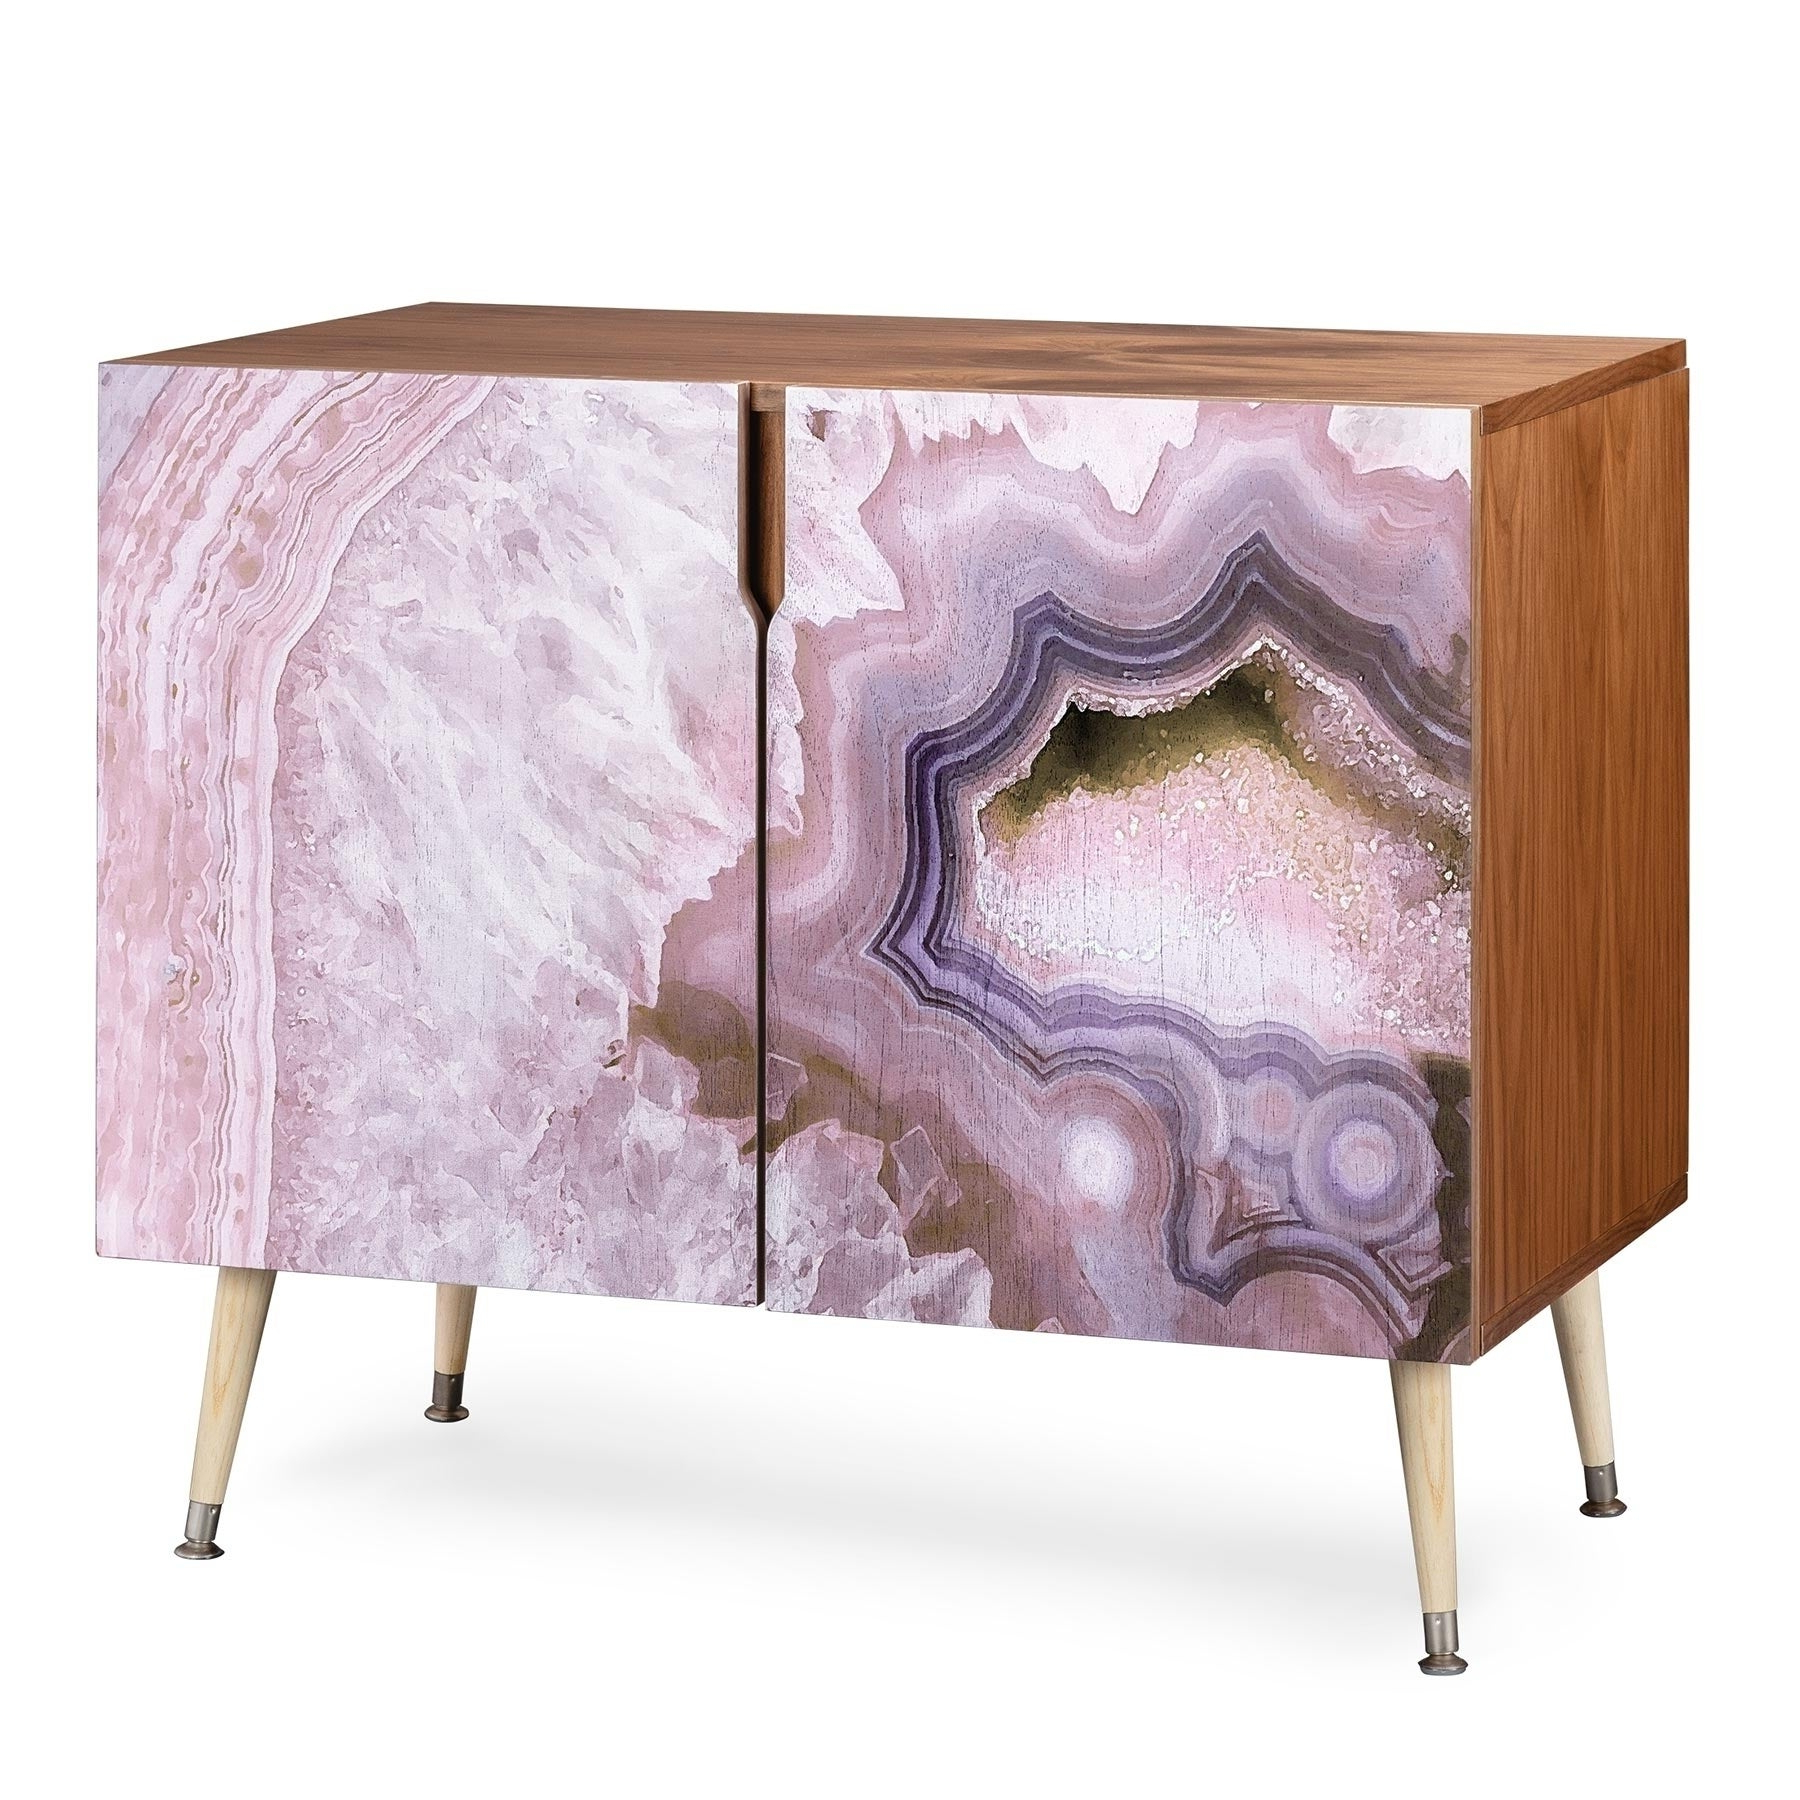 Deny Designs Pale Pink Agate Wood Credenza (3 Leg Options) With Southwest Pink Credenzas (View 4 of 20)